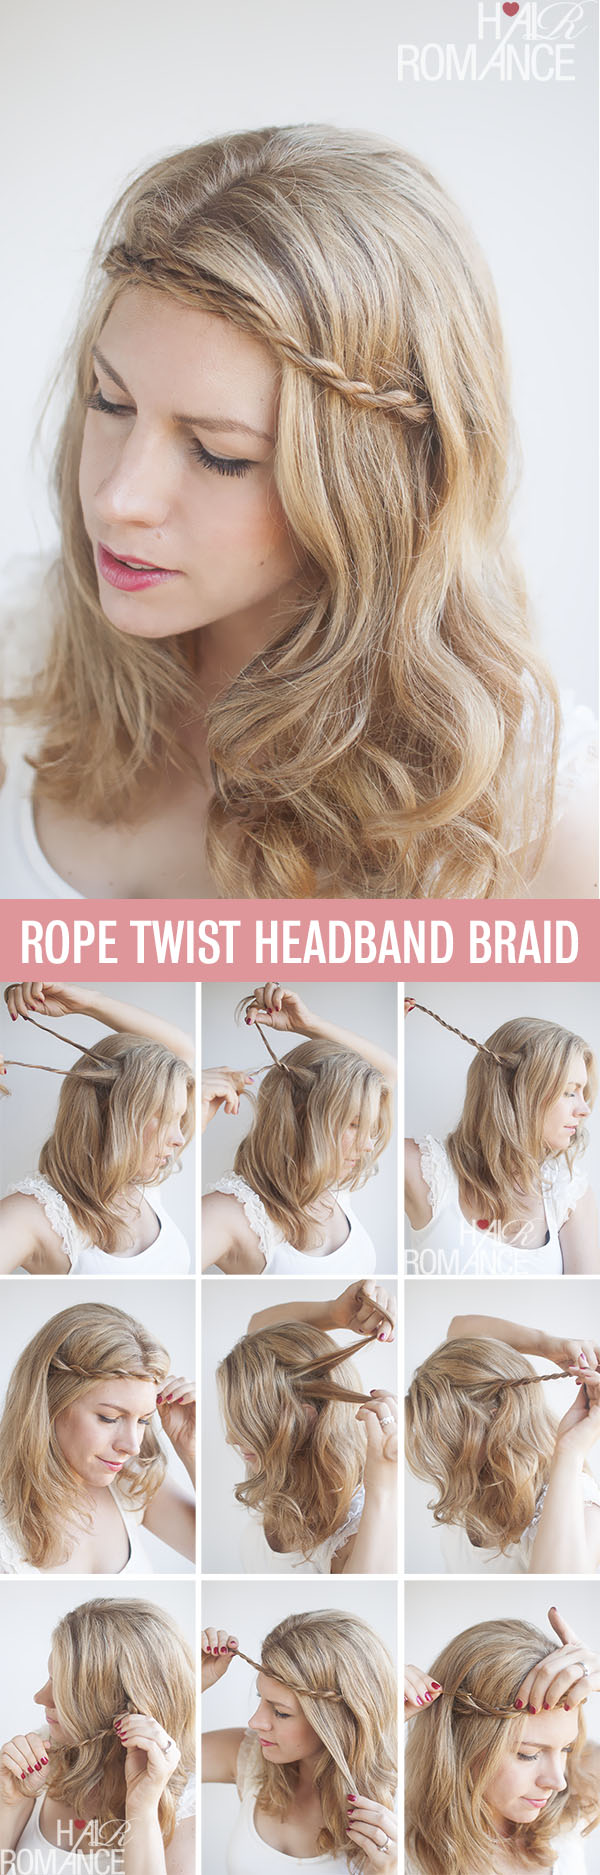 Hair Romance - rope braided headband tutorial